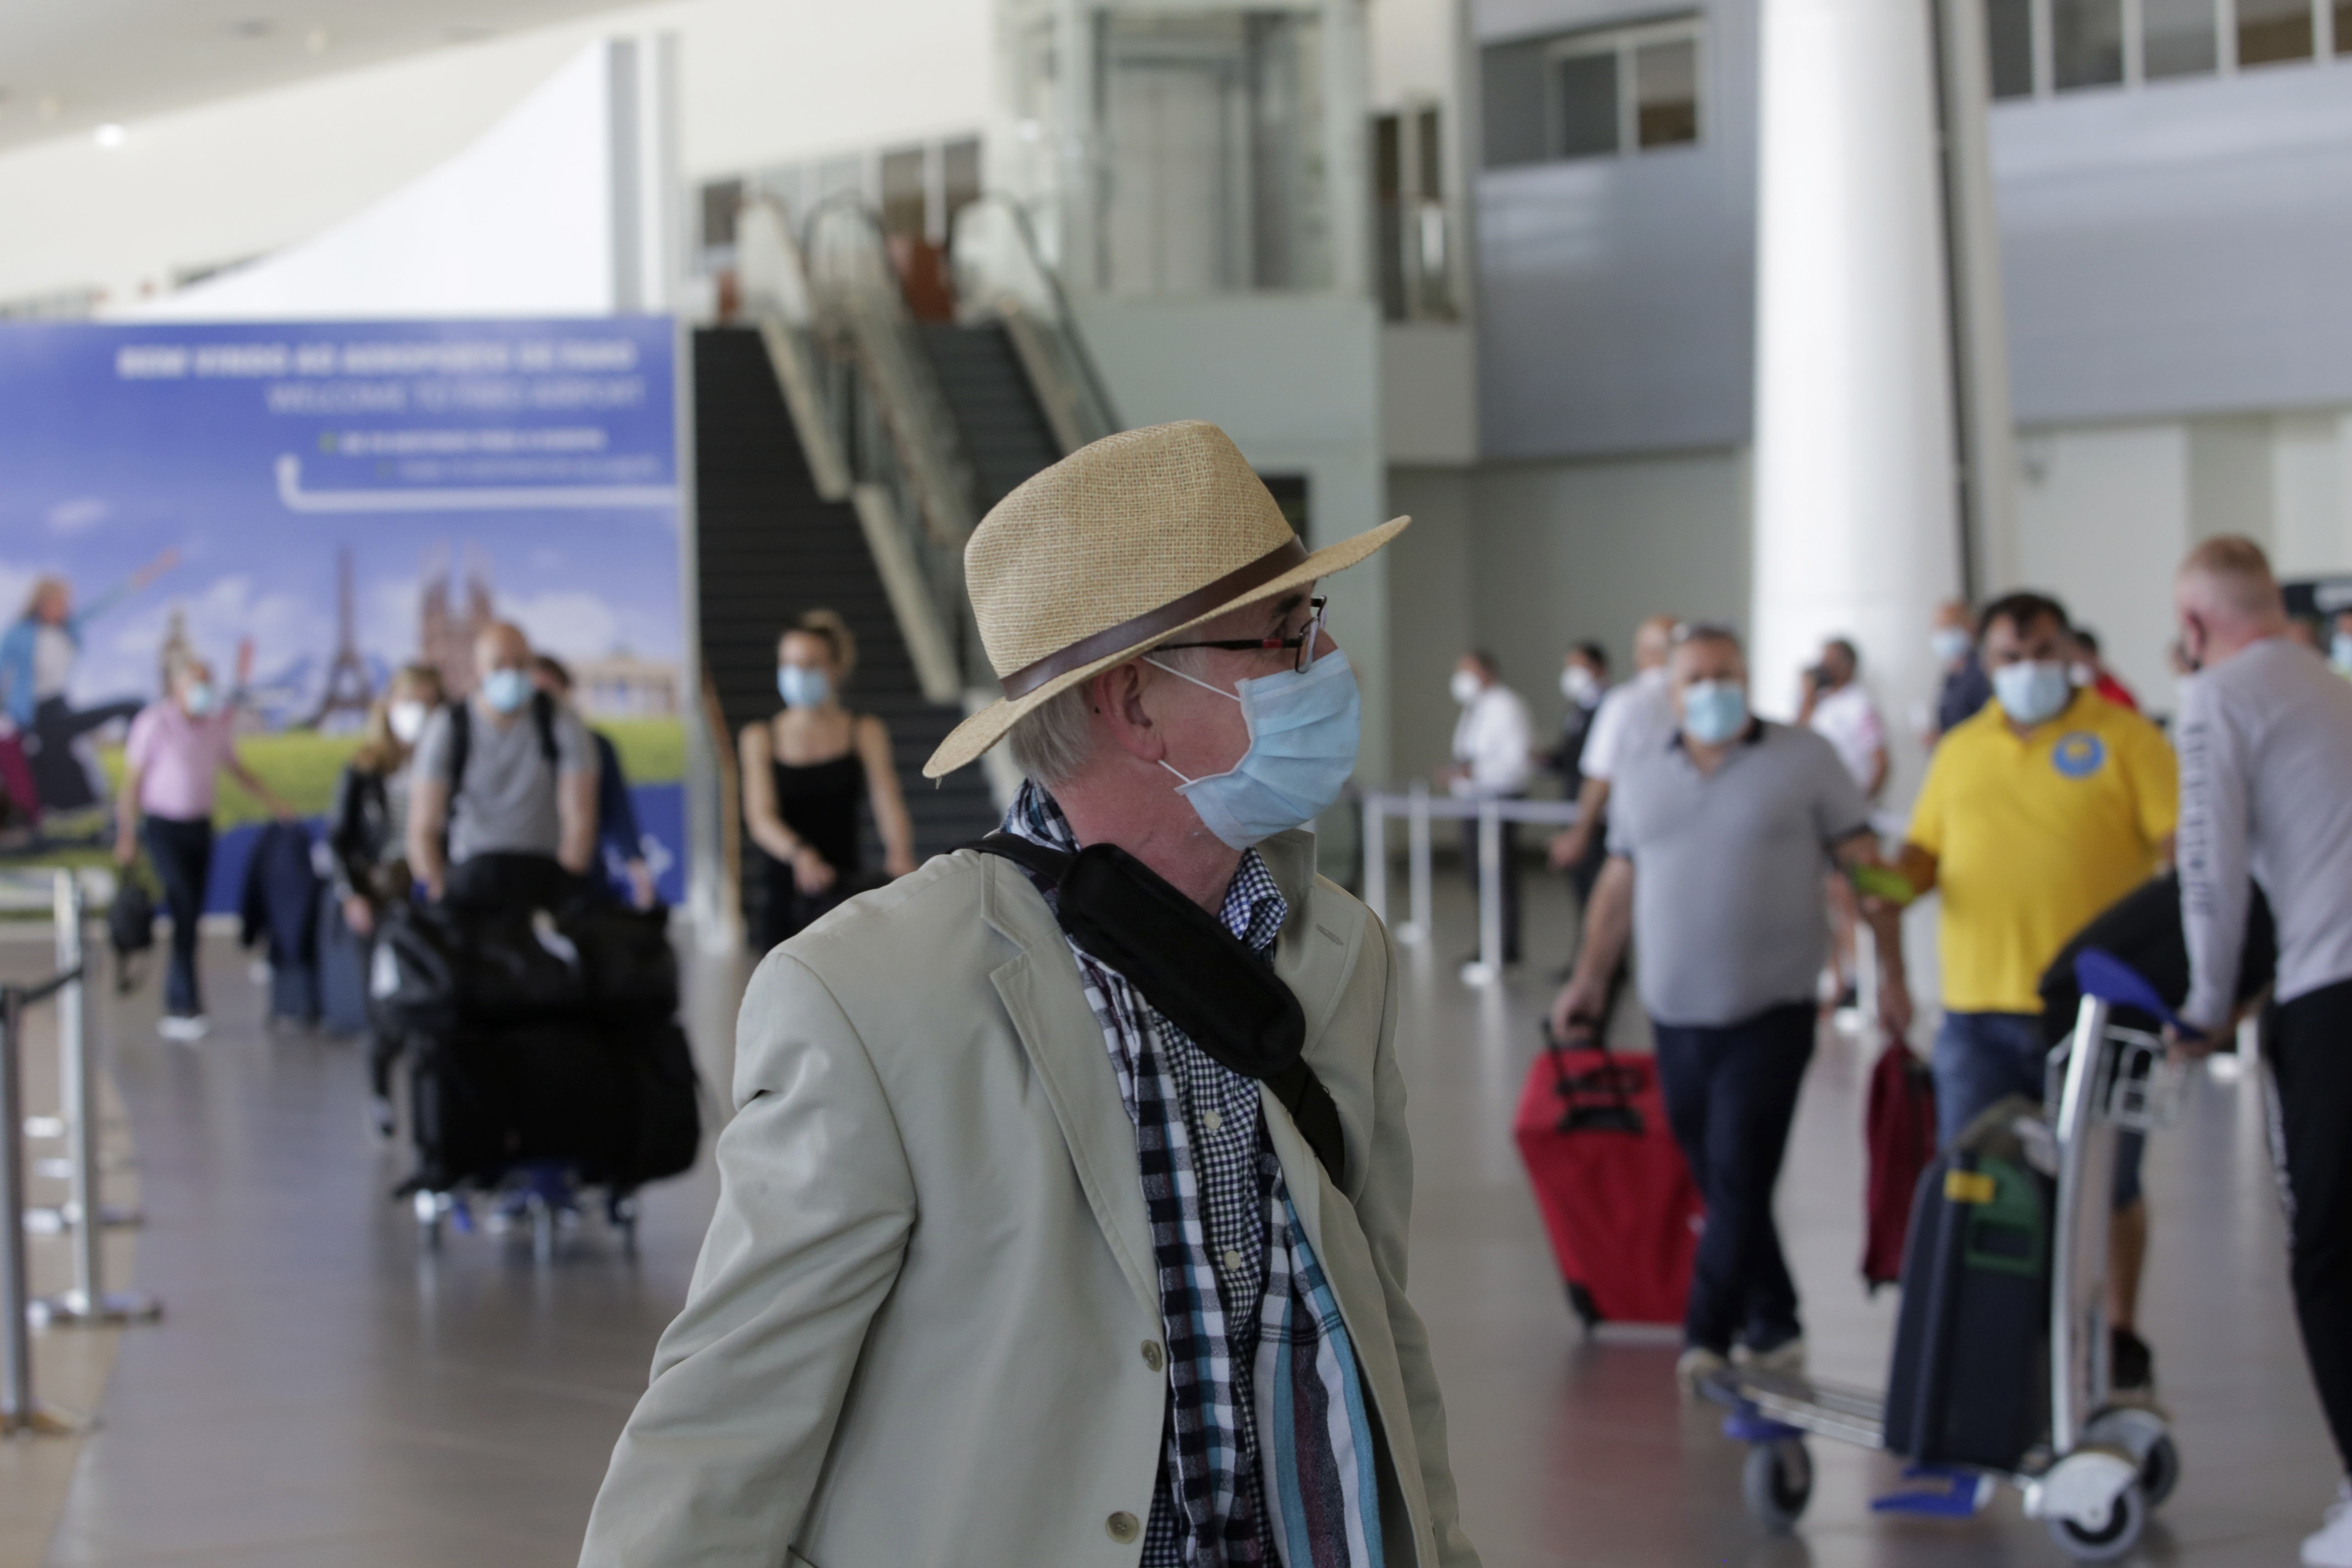 Passengers on a U.K. flight arrive at the airport in Faro, Portugal, on Monday